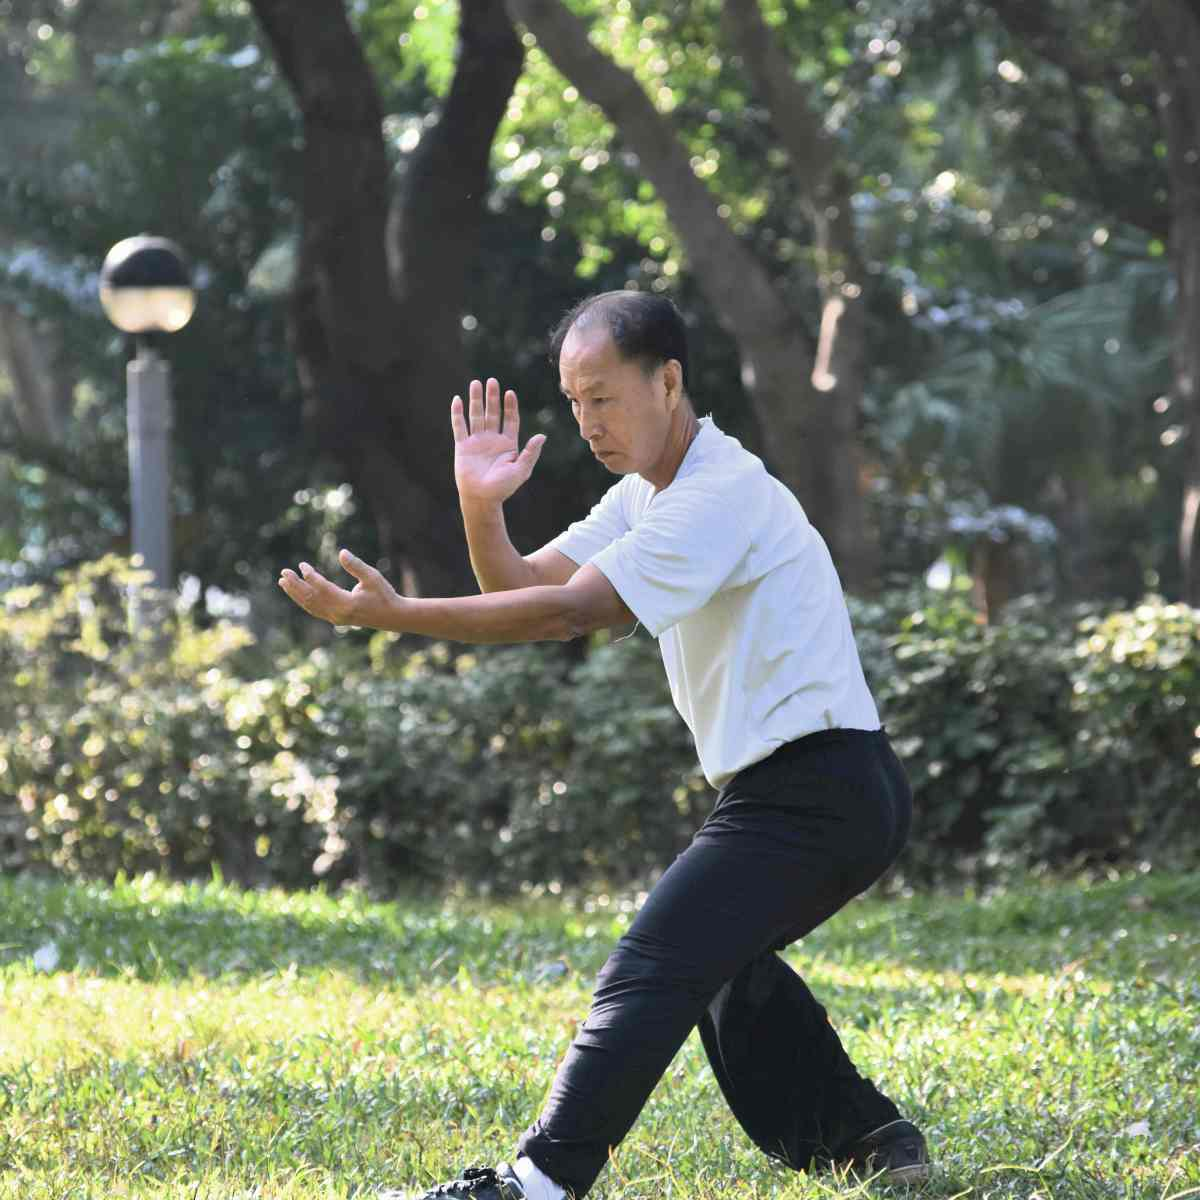 old asian man performing tai chi outdoor by the park   types of martial arts   types of martial arts self defense   all types of martial arts